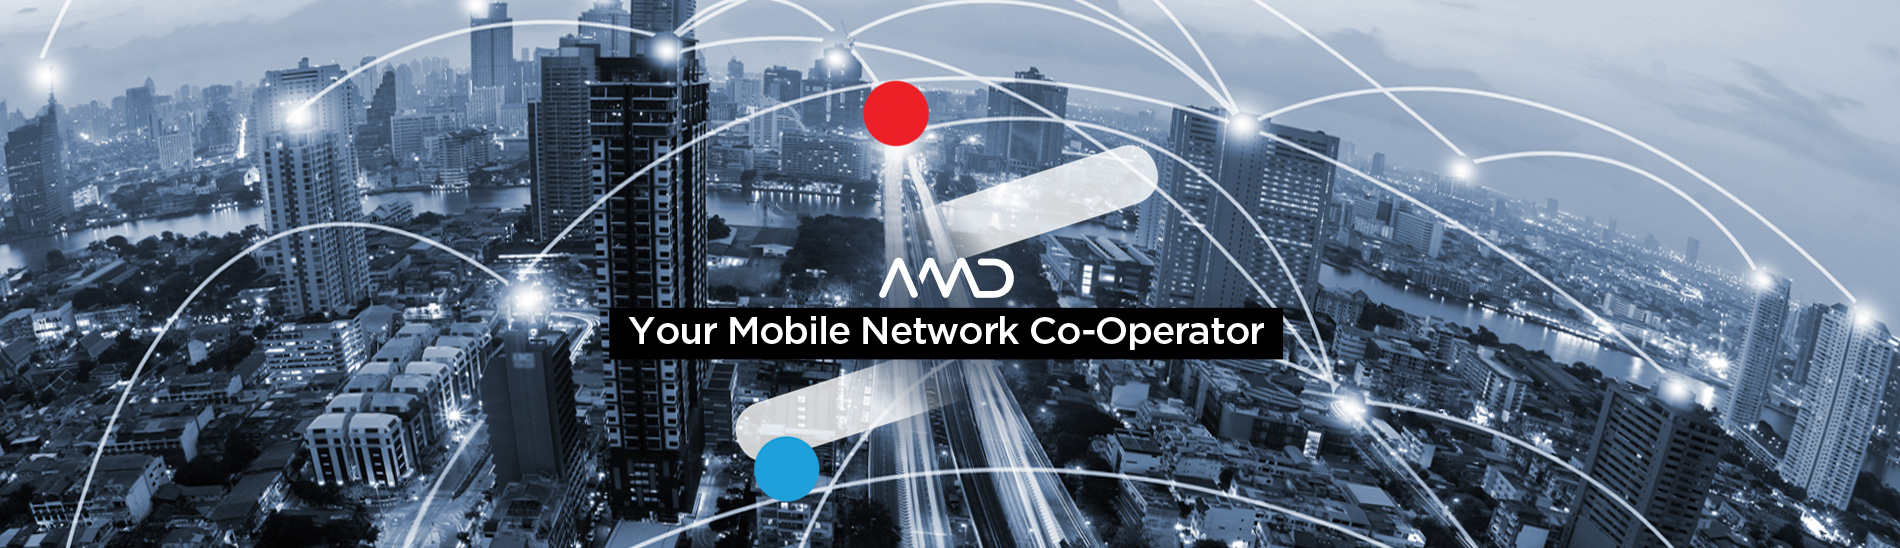 Your Mobile Network Co-Operator